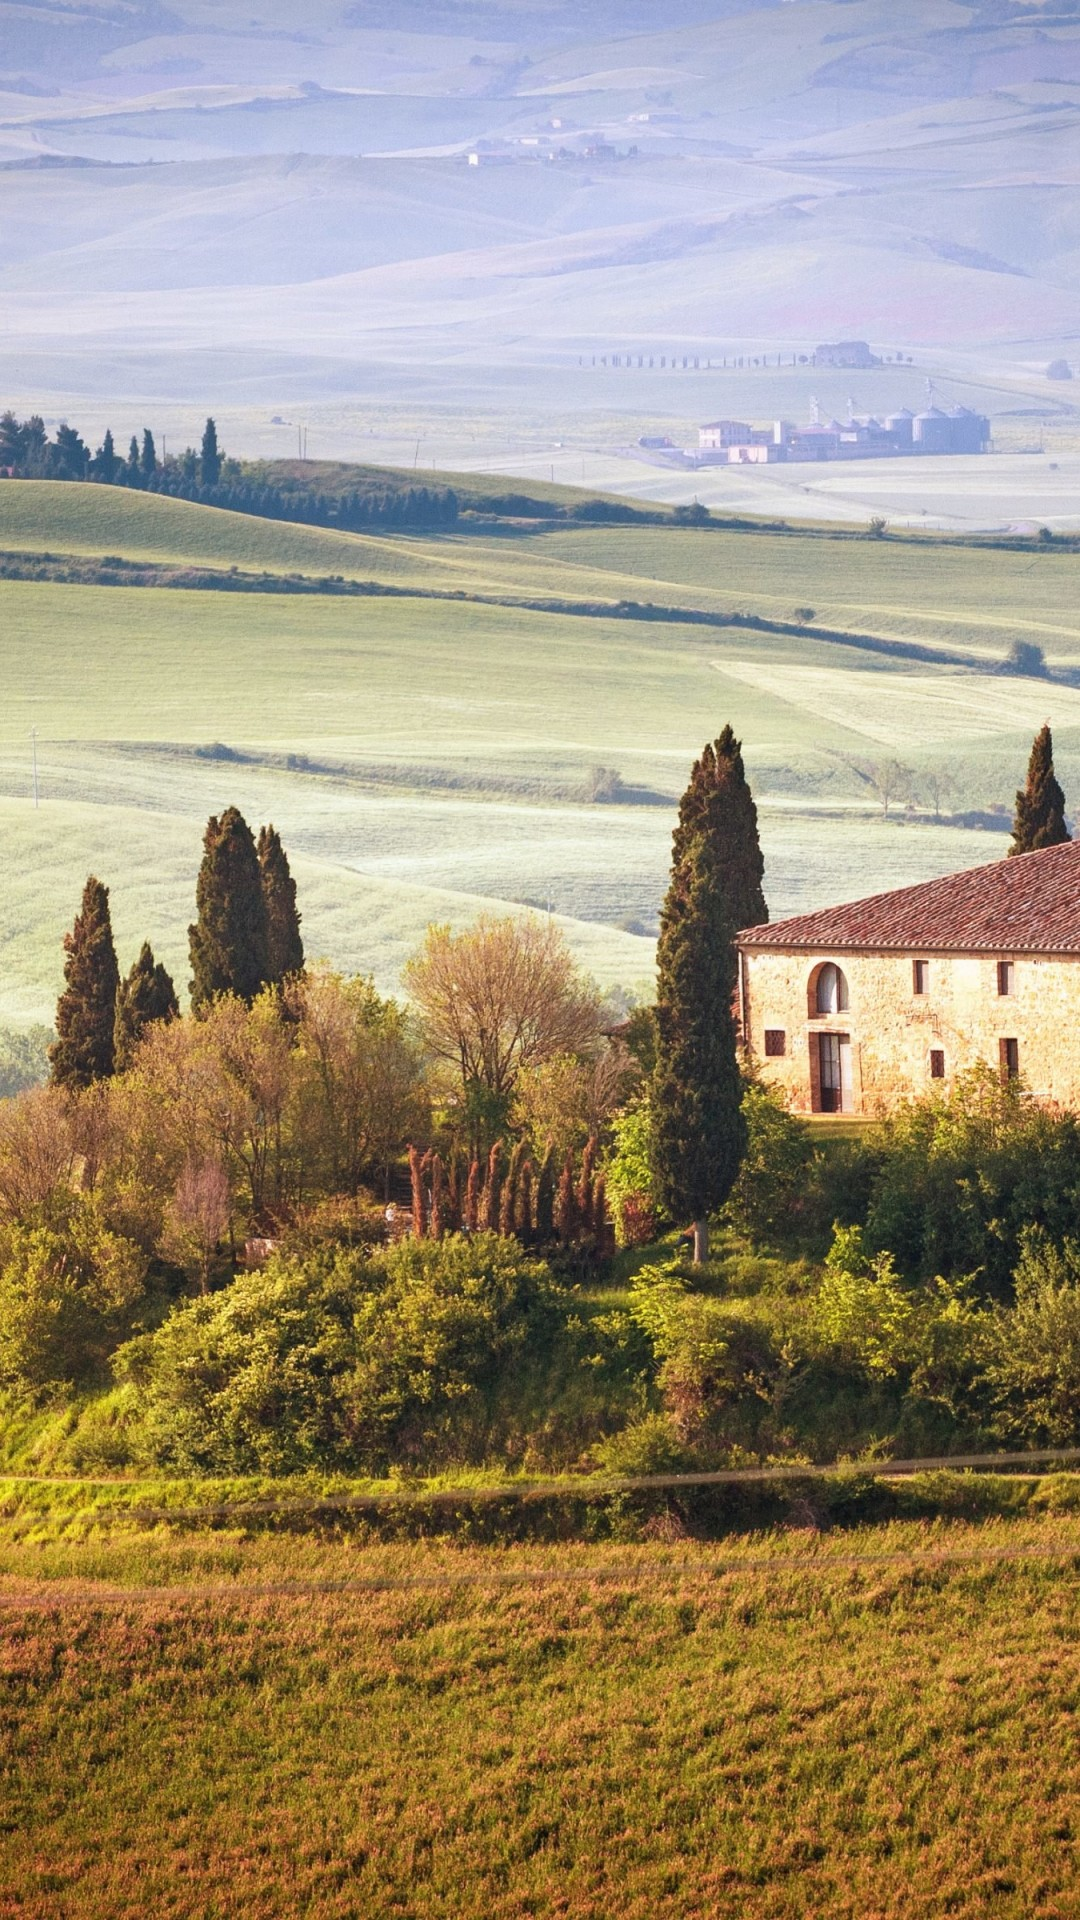 Summer in Tuscany, Italy Wallpaper for SONY Xperia Z1